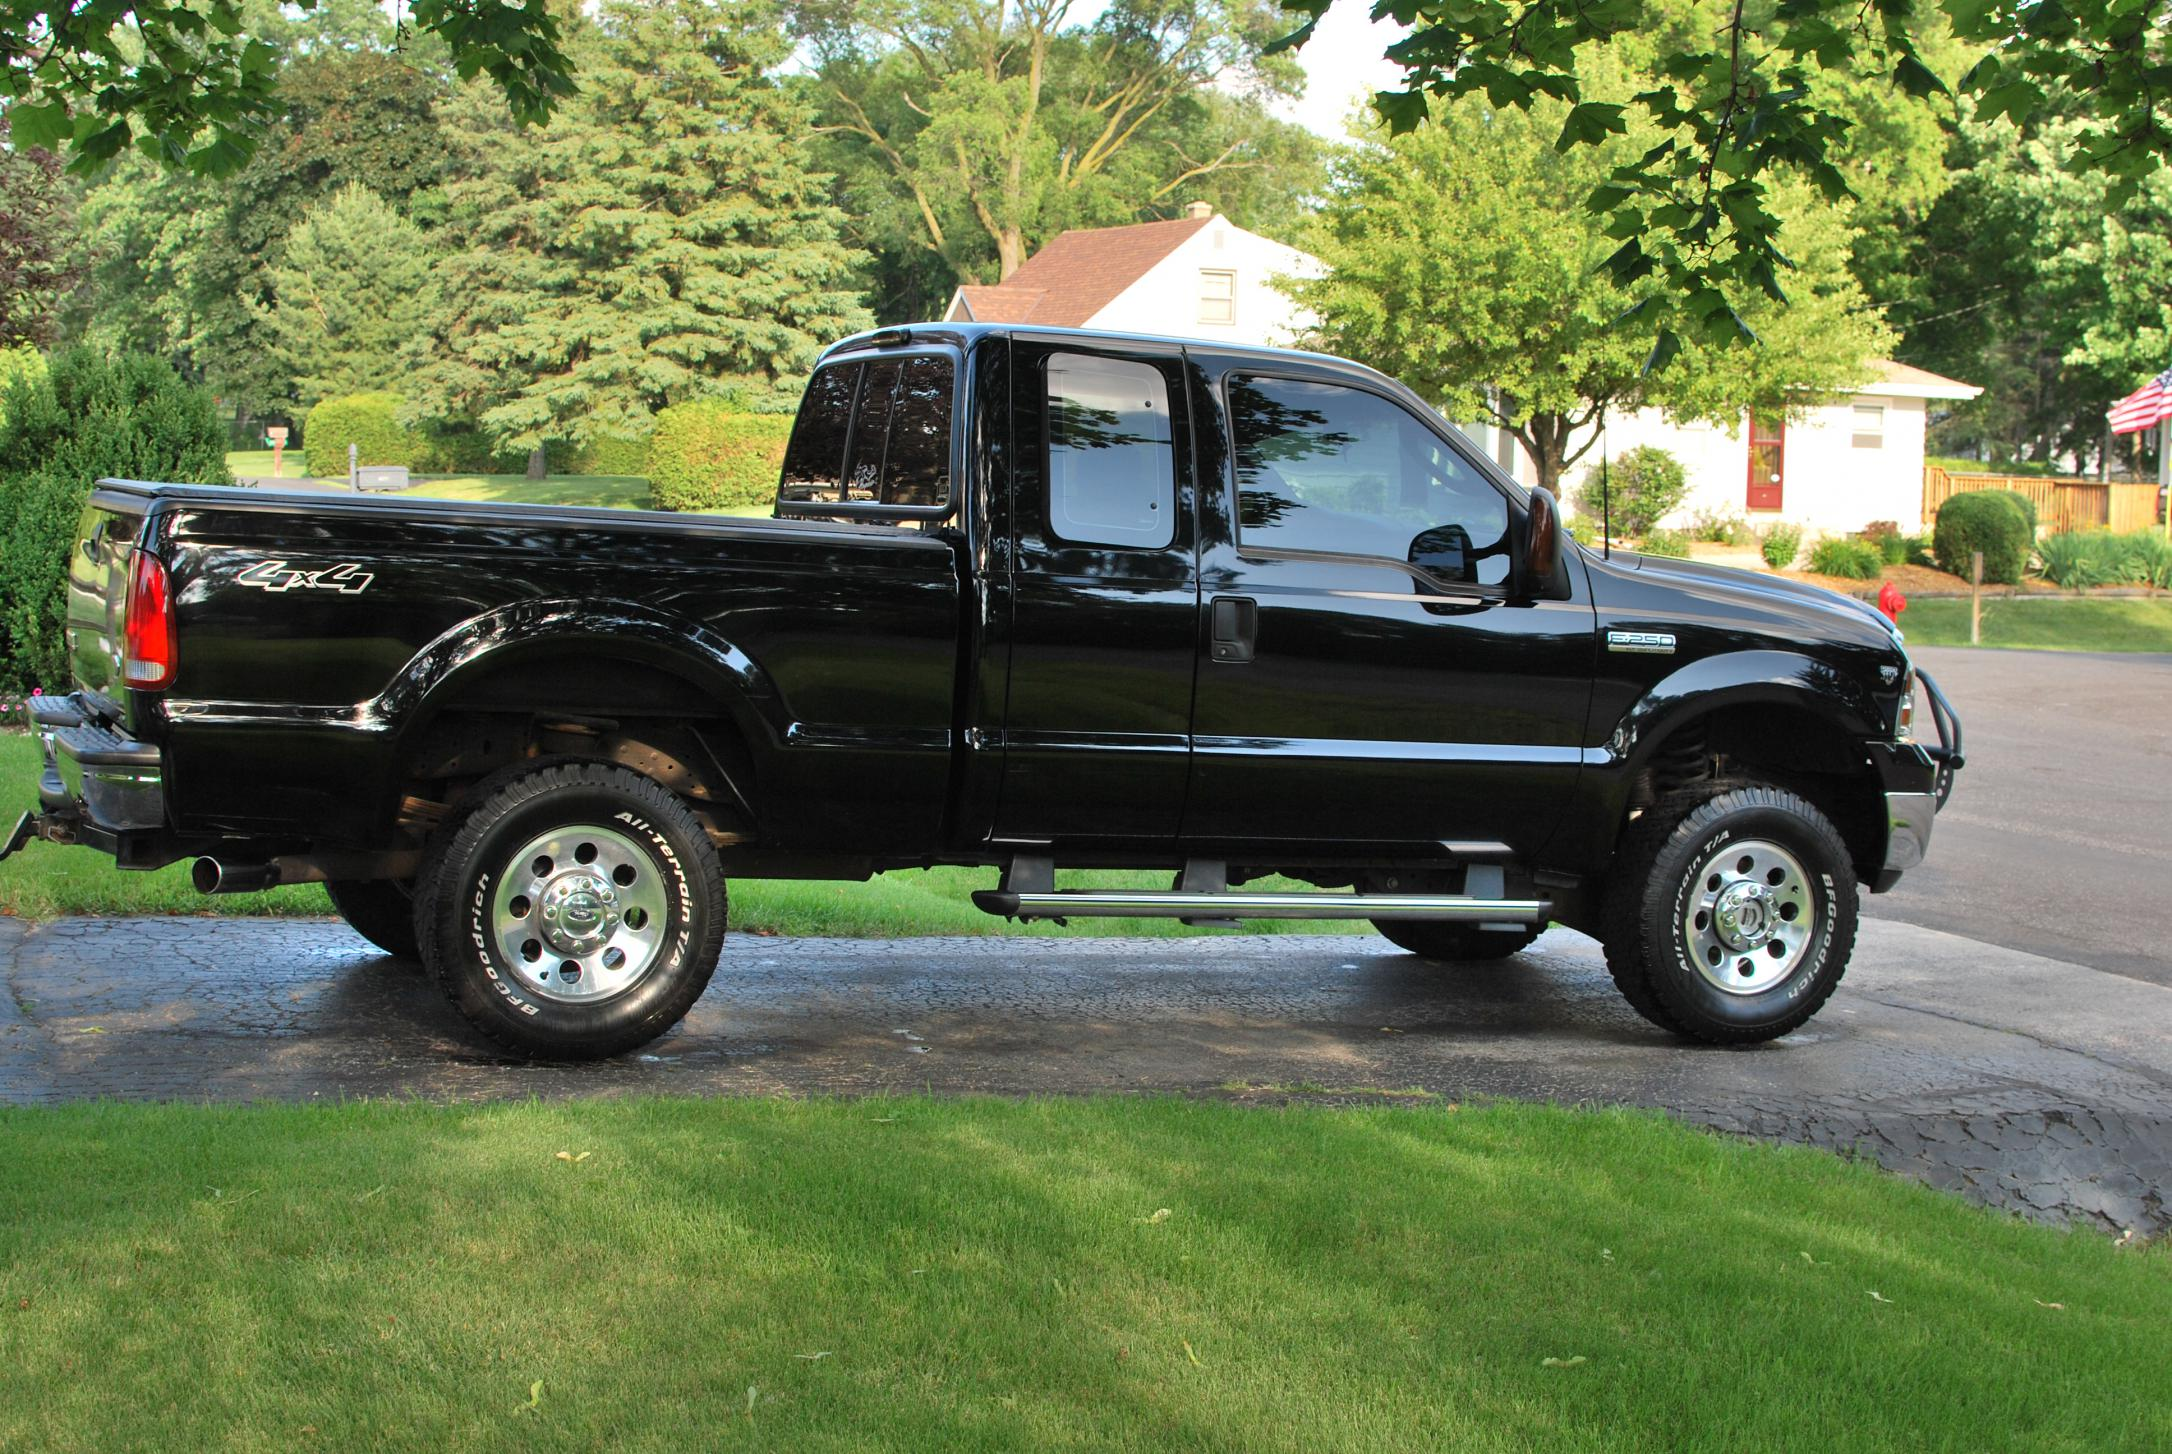 2011 F250 Leveling Kit I don't like the leveling kit